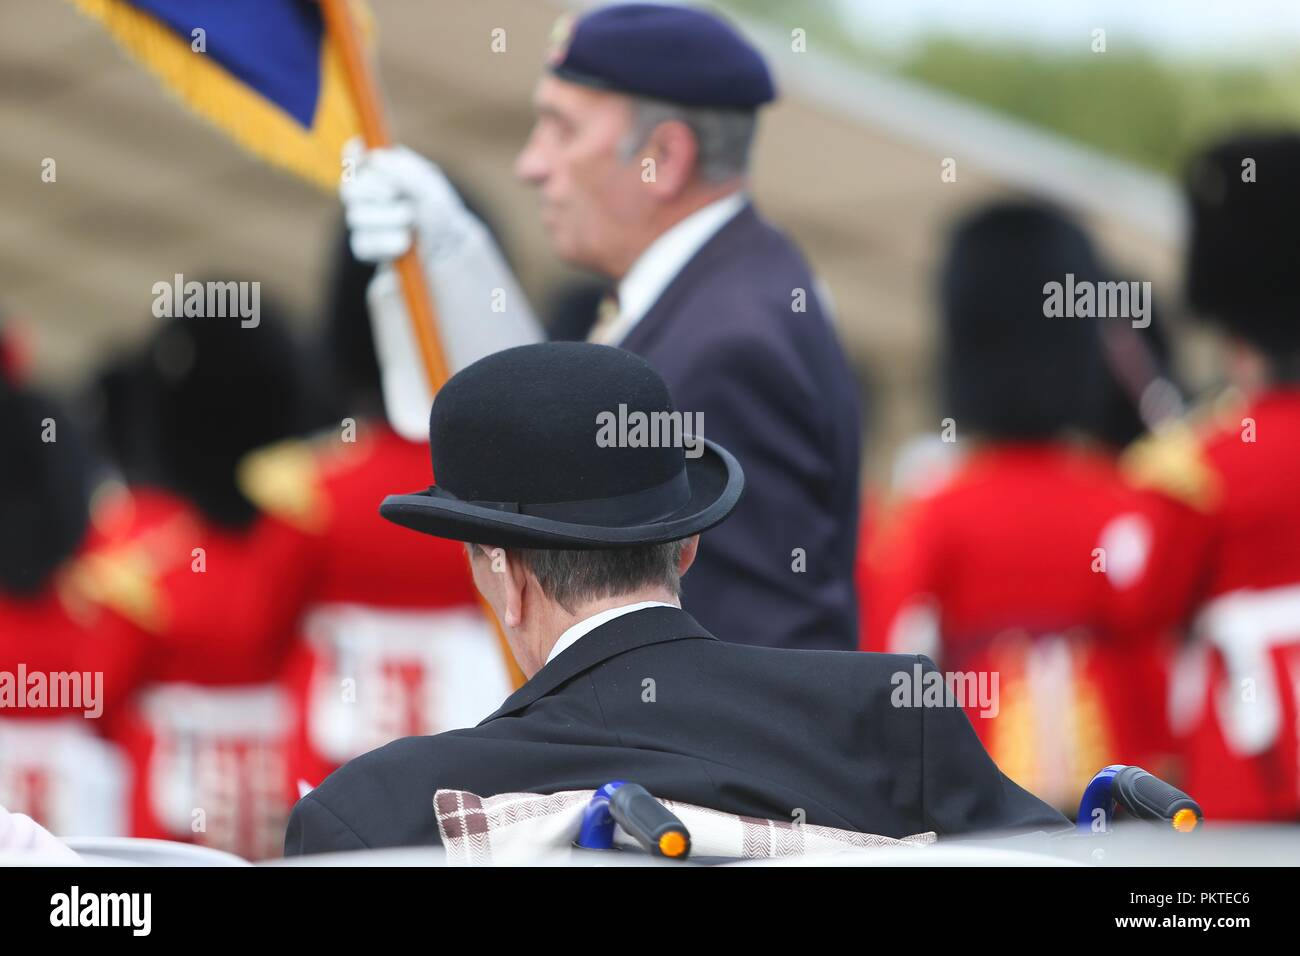 Worcester, Worcestershire, UK. 15th September 2018. An ex-serviceman wears a bowler hat at the Drumhead Service at Gheluvelt Park, Worcester. Peter Lopeman/Alamy Live News - Stock Image